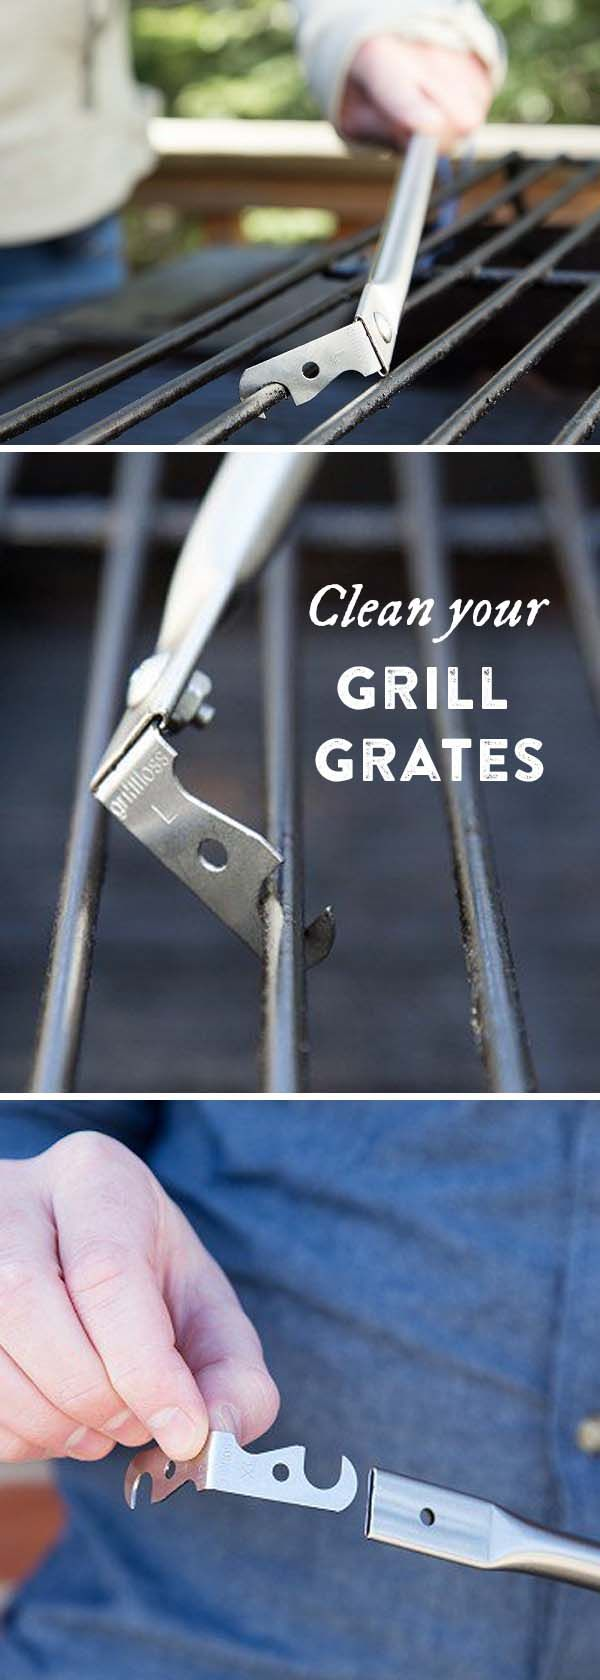 Wondering how to clean your grill?  This tool scrapes grill grates from all angles—even the particularly black underside.